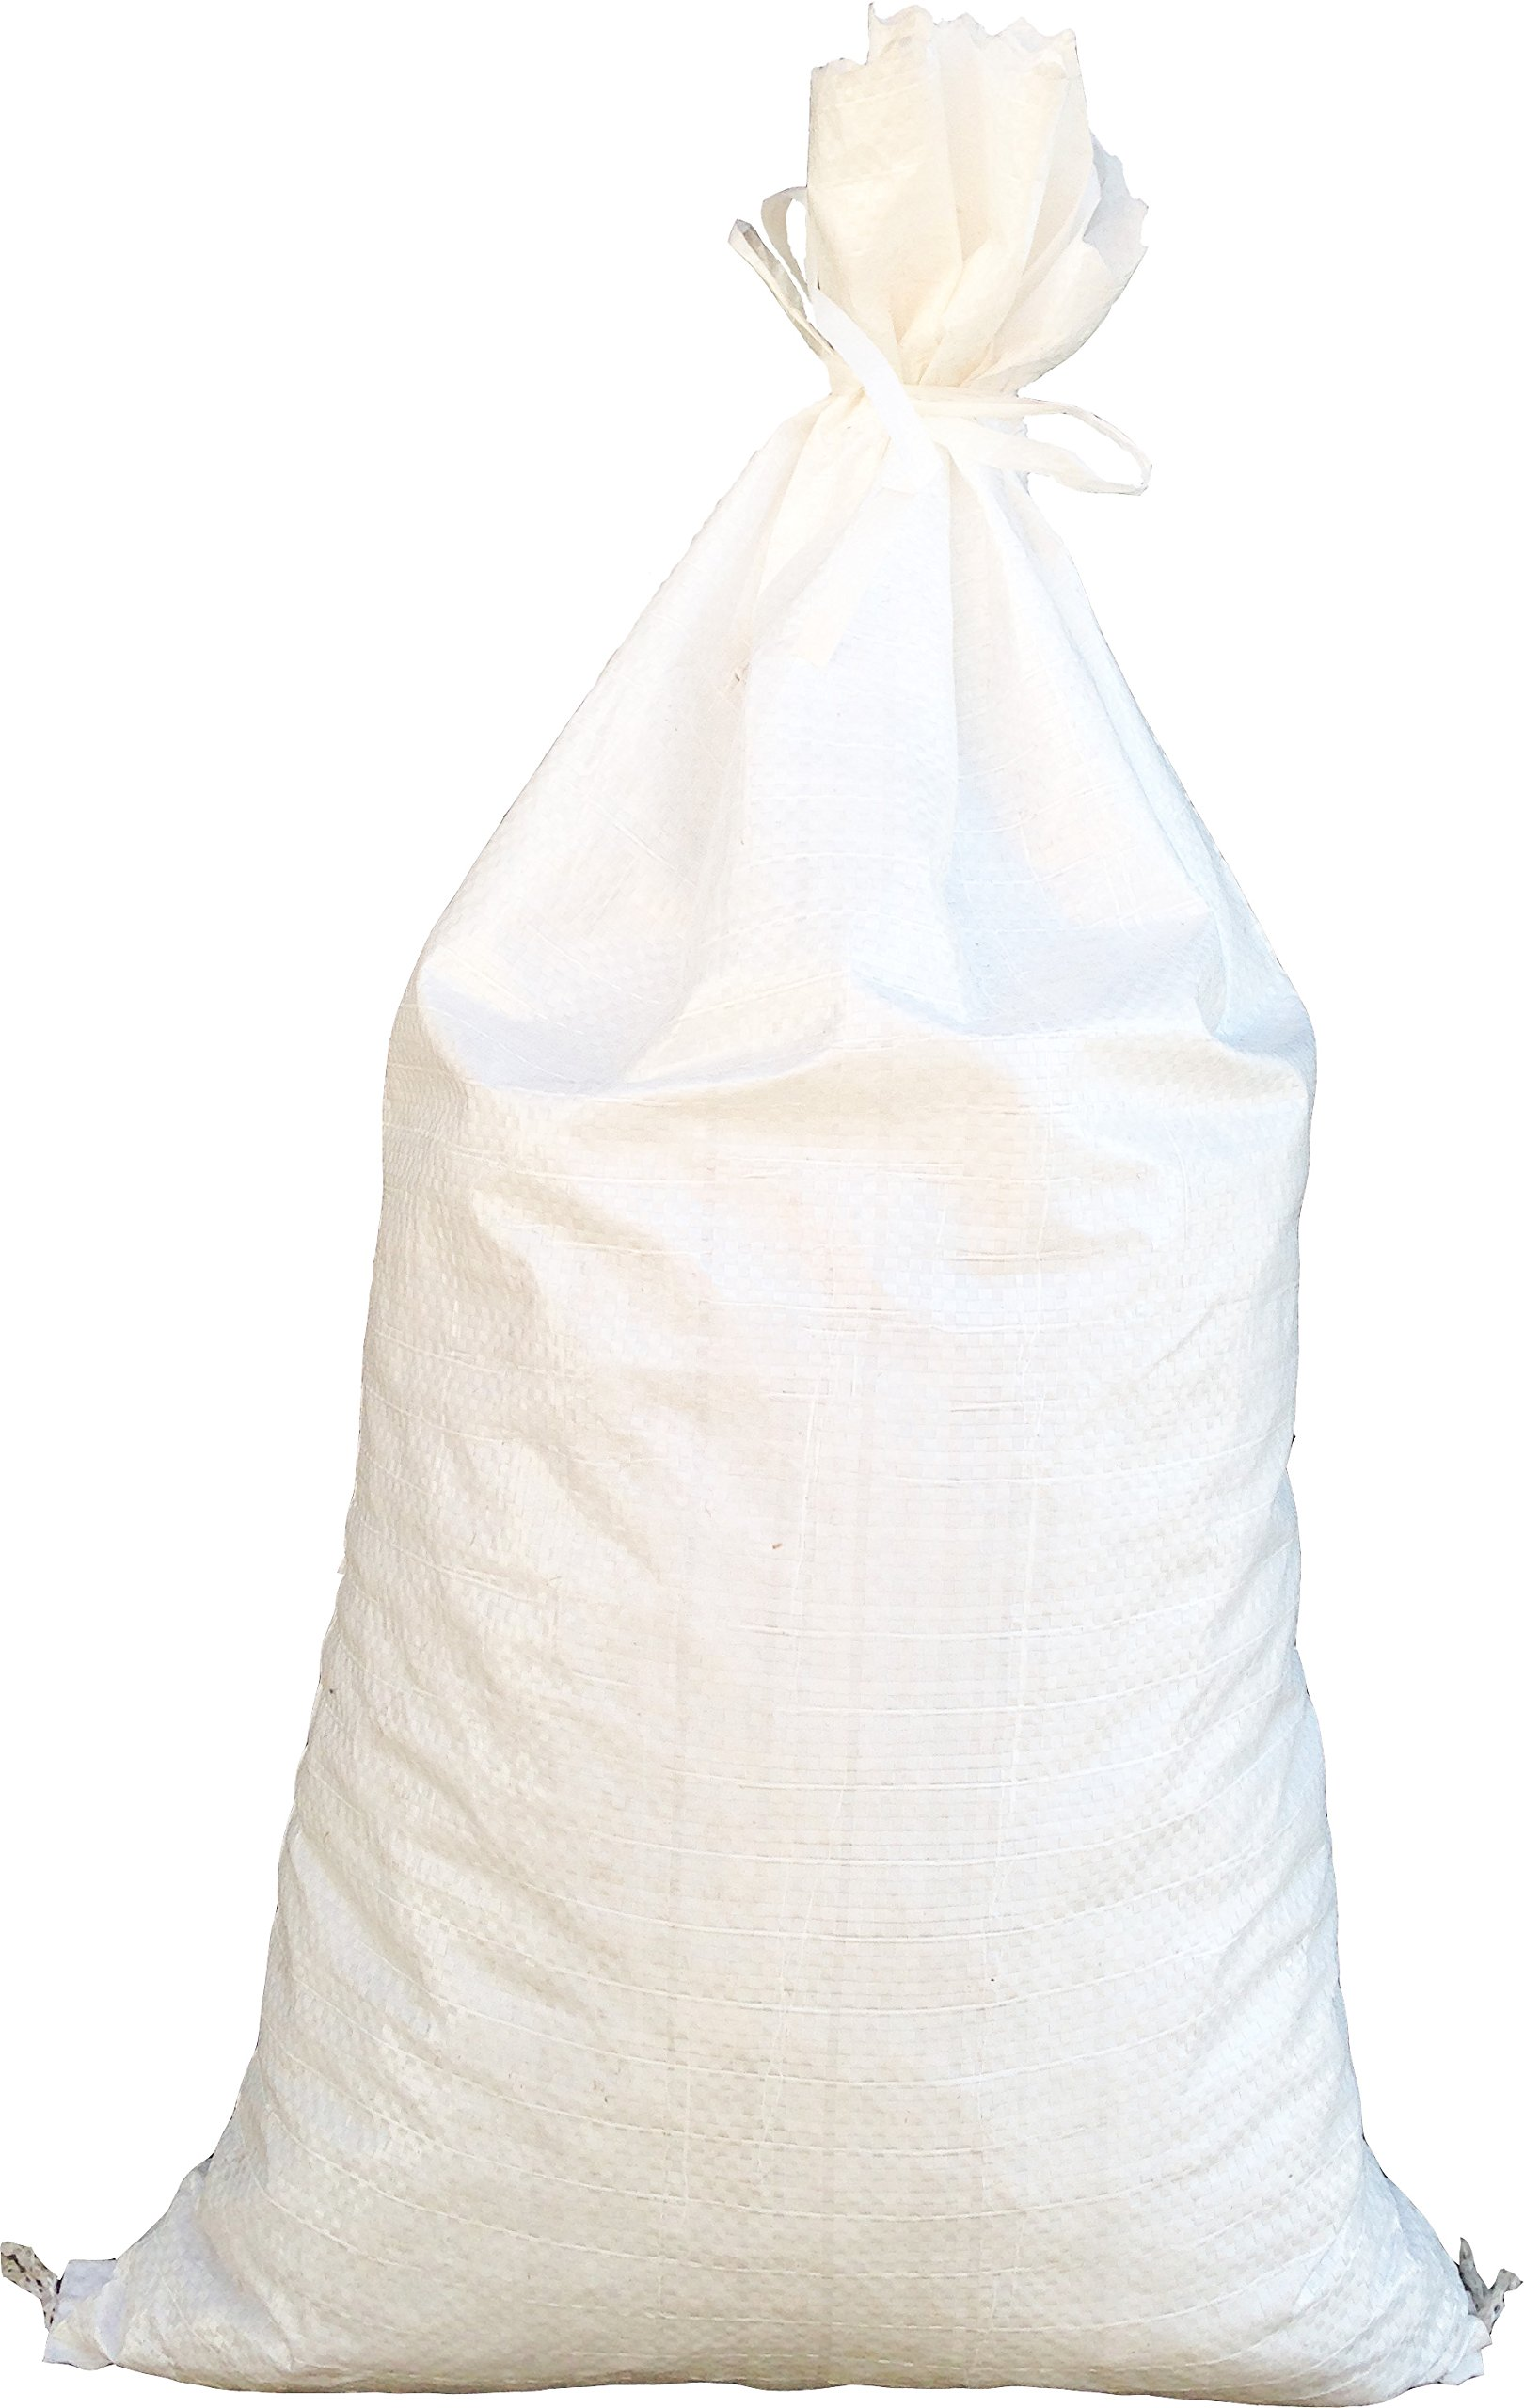 Sandbags for Flooding - Size: 18'' x 30'' - Color: White - Sand Bag - Flood Water Barrier - Water Curb - Tent Sandbags - Store Bags by Sandbaggy (100 Bags)